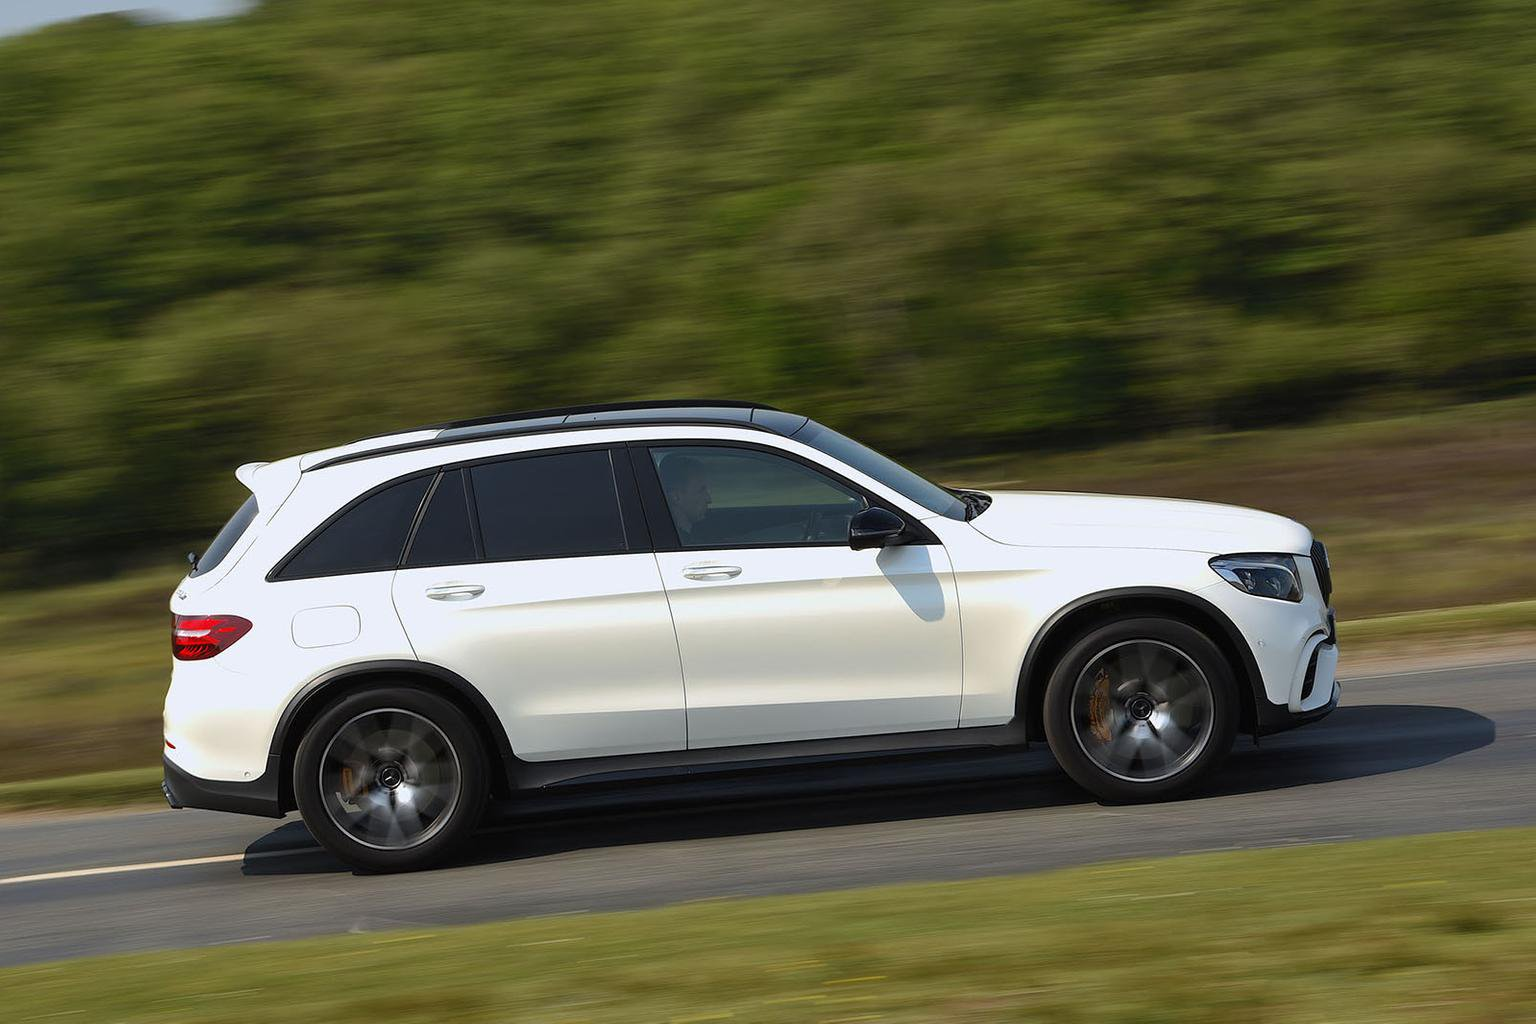 2018 Mercedes-AMG GLC 63 S review – verdict